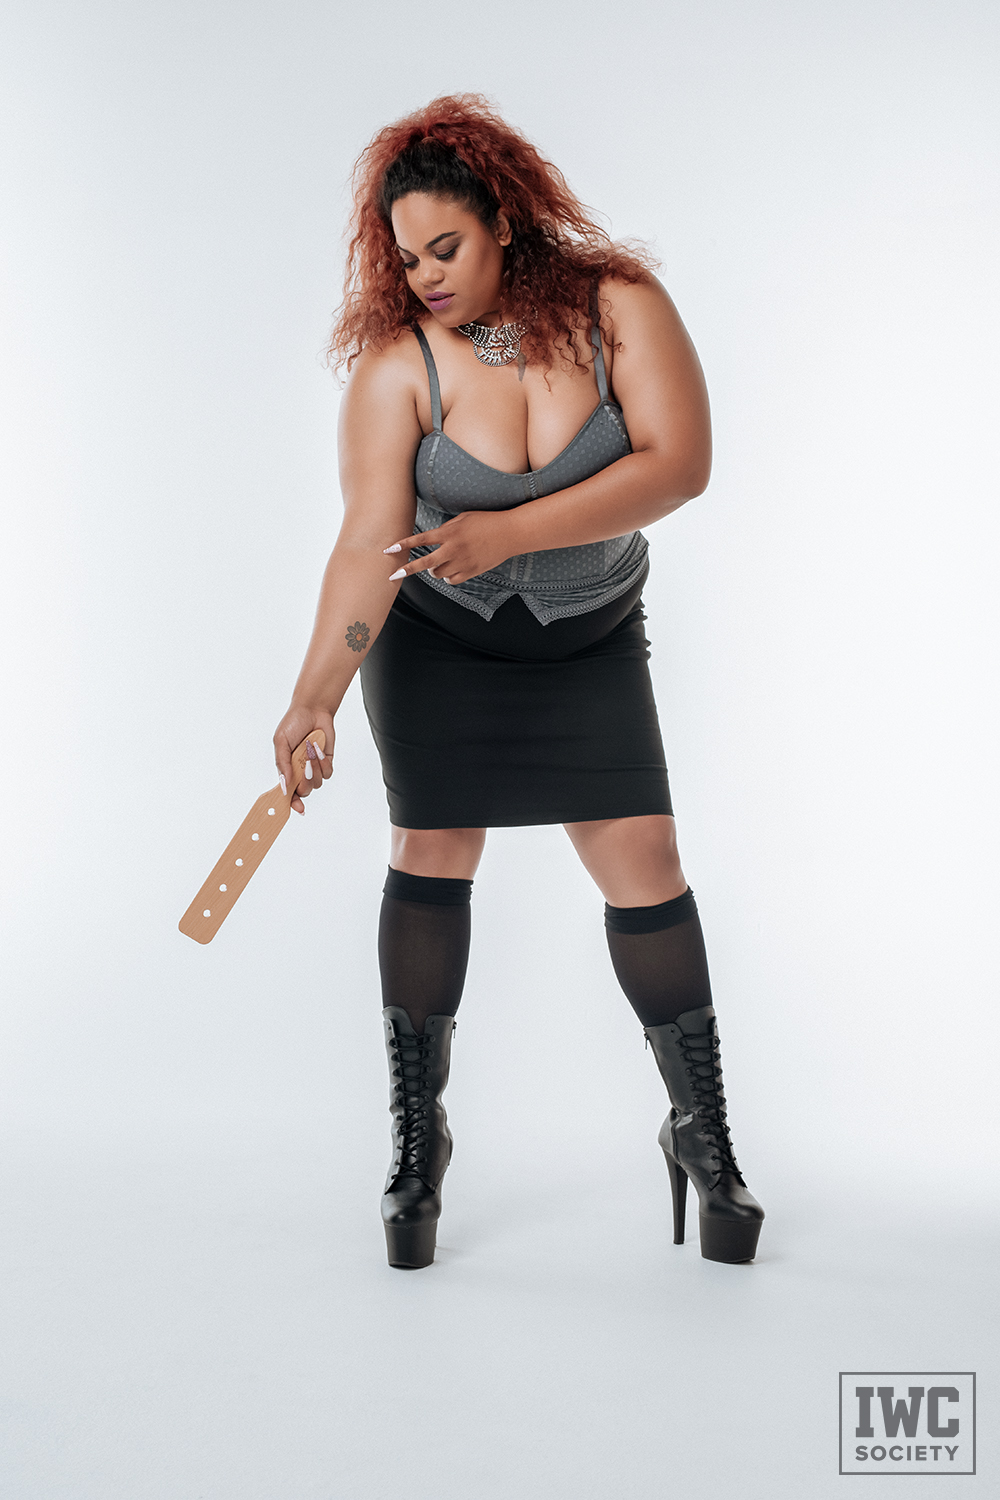 bbw femdom Ms Charmness holding a paddle wearing a low cut top black skirt and black boots